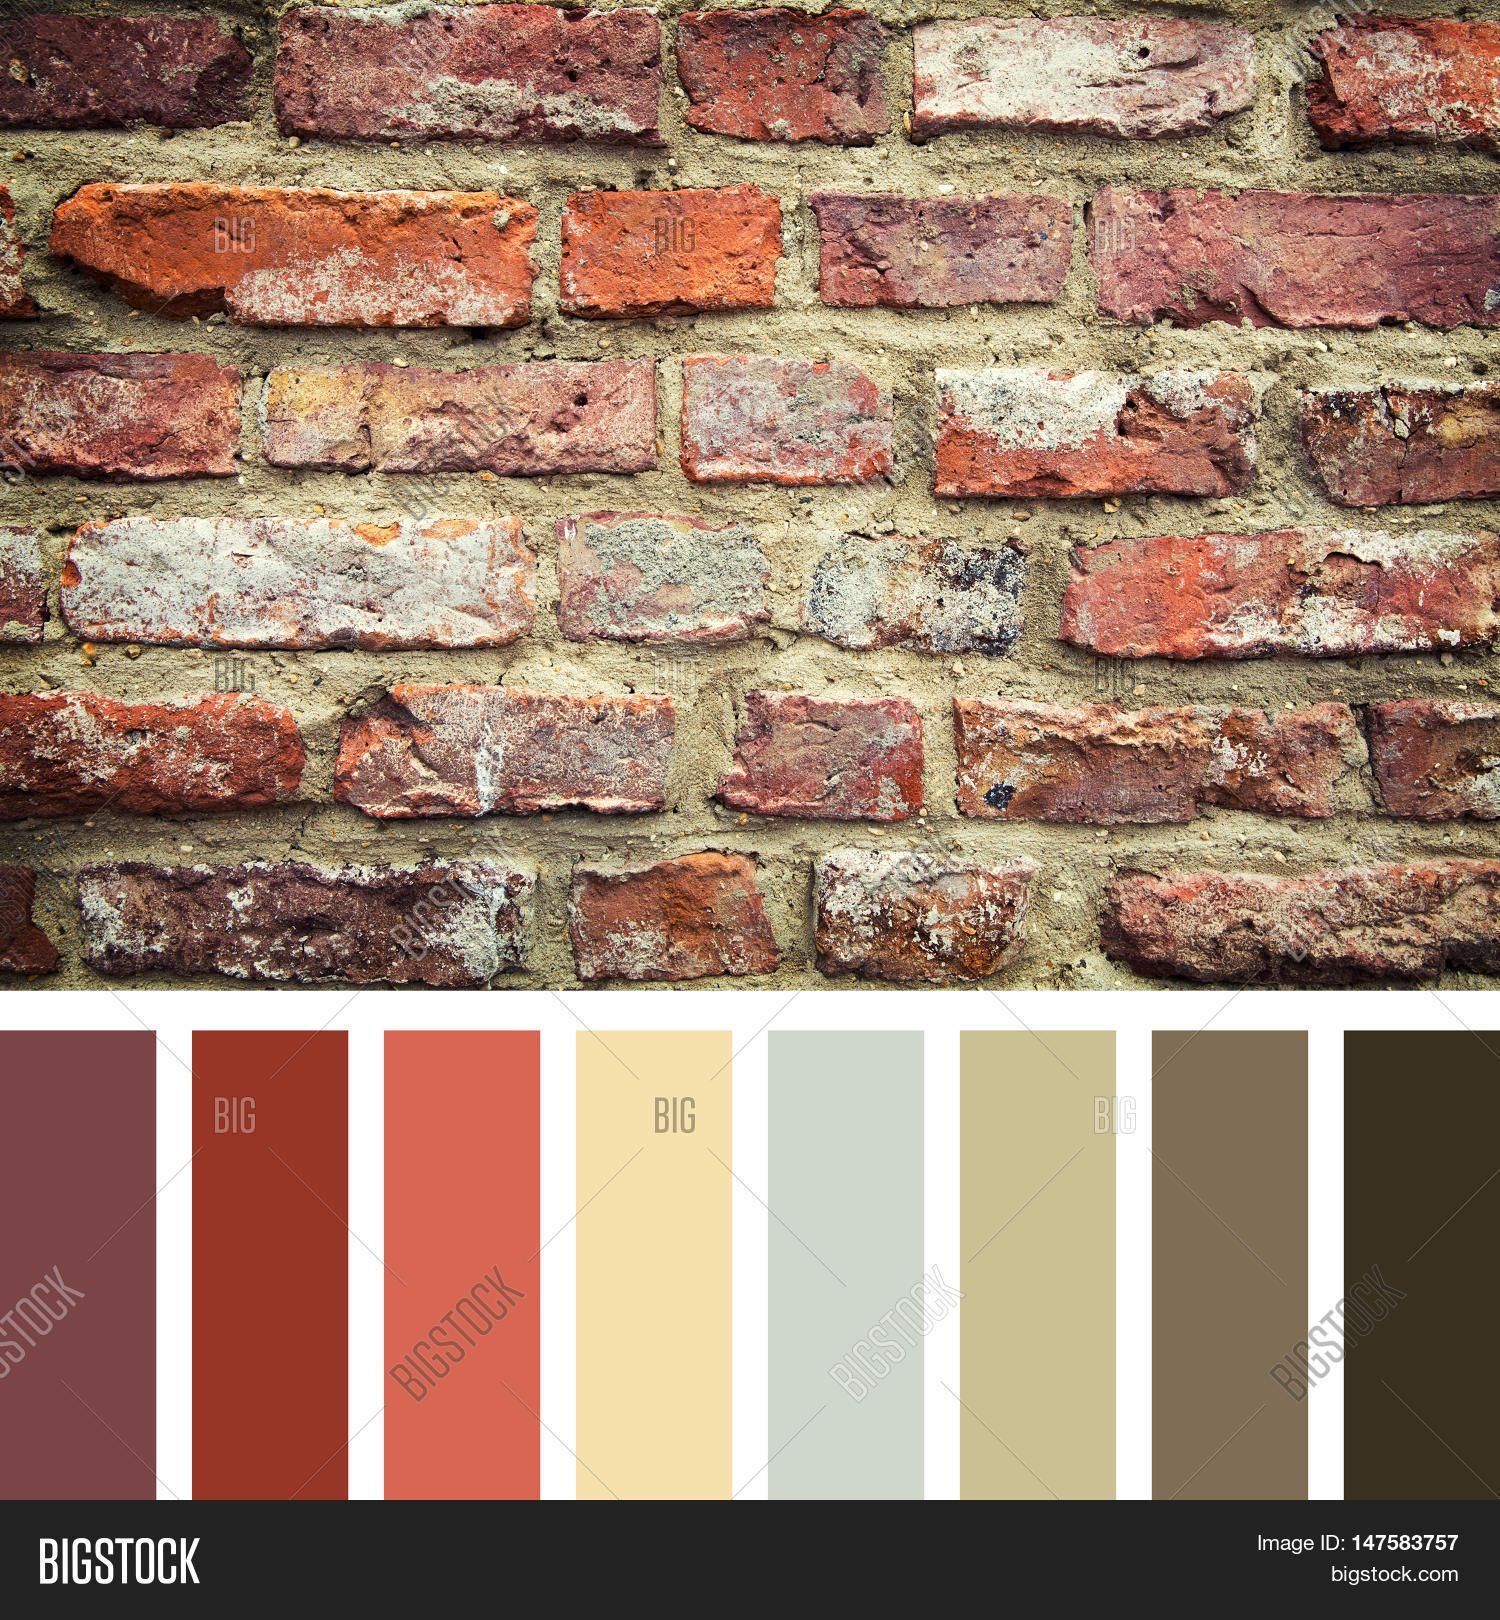 Old Red Brick Wall In A Colour Palette With Complimentary Colour Swatche House Paint Color Combination Exterior House Paint Color Combinations Red Brick Walls,White Kitchen Cabinets With Carrara Marble Countertops